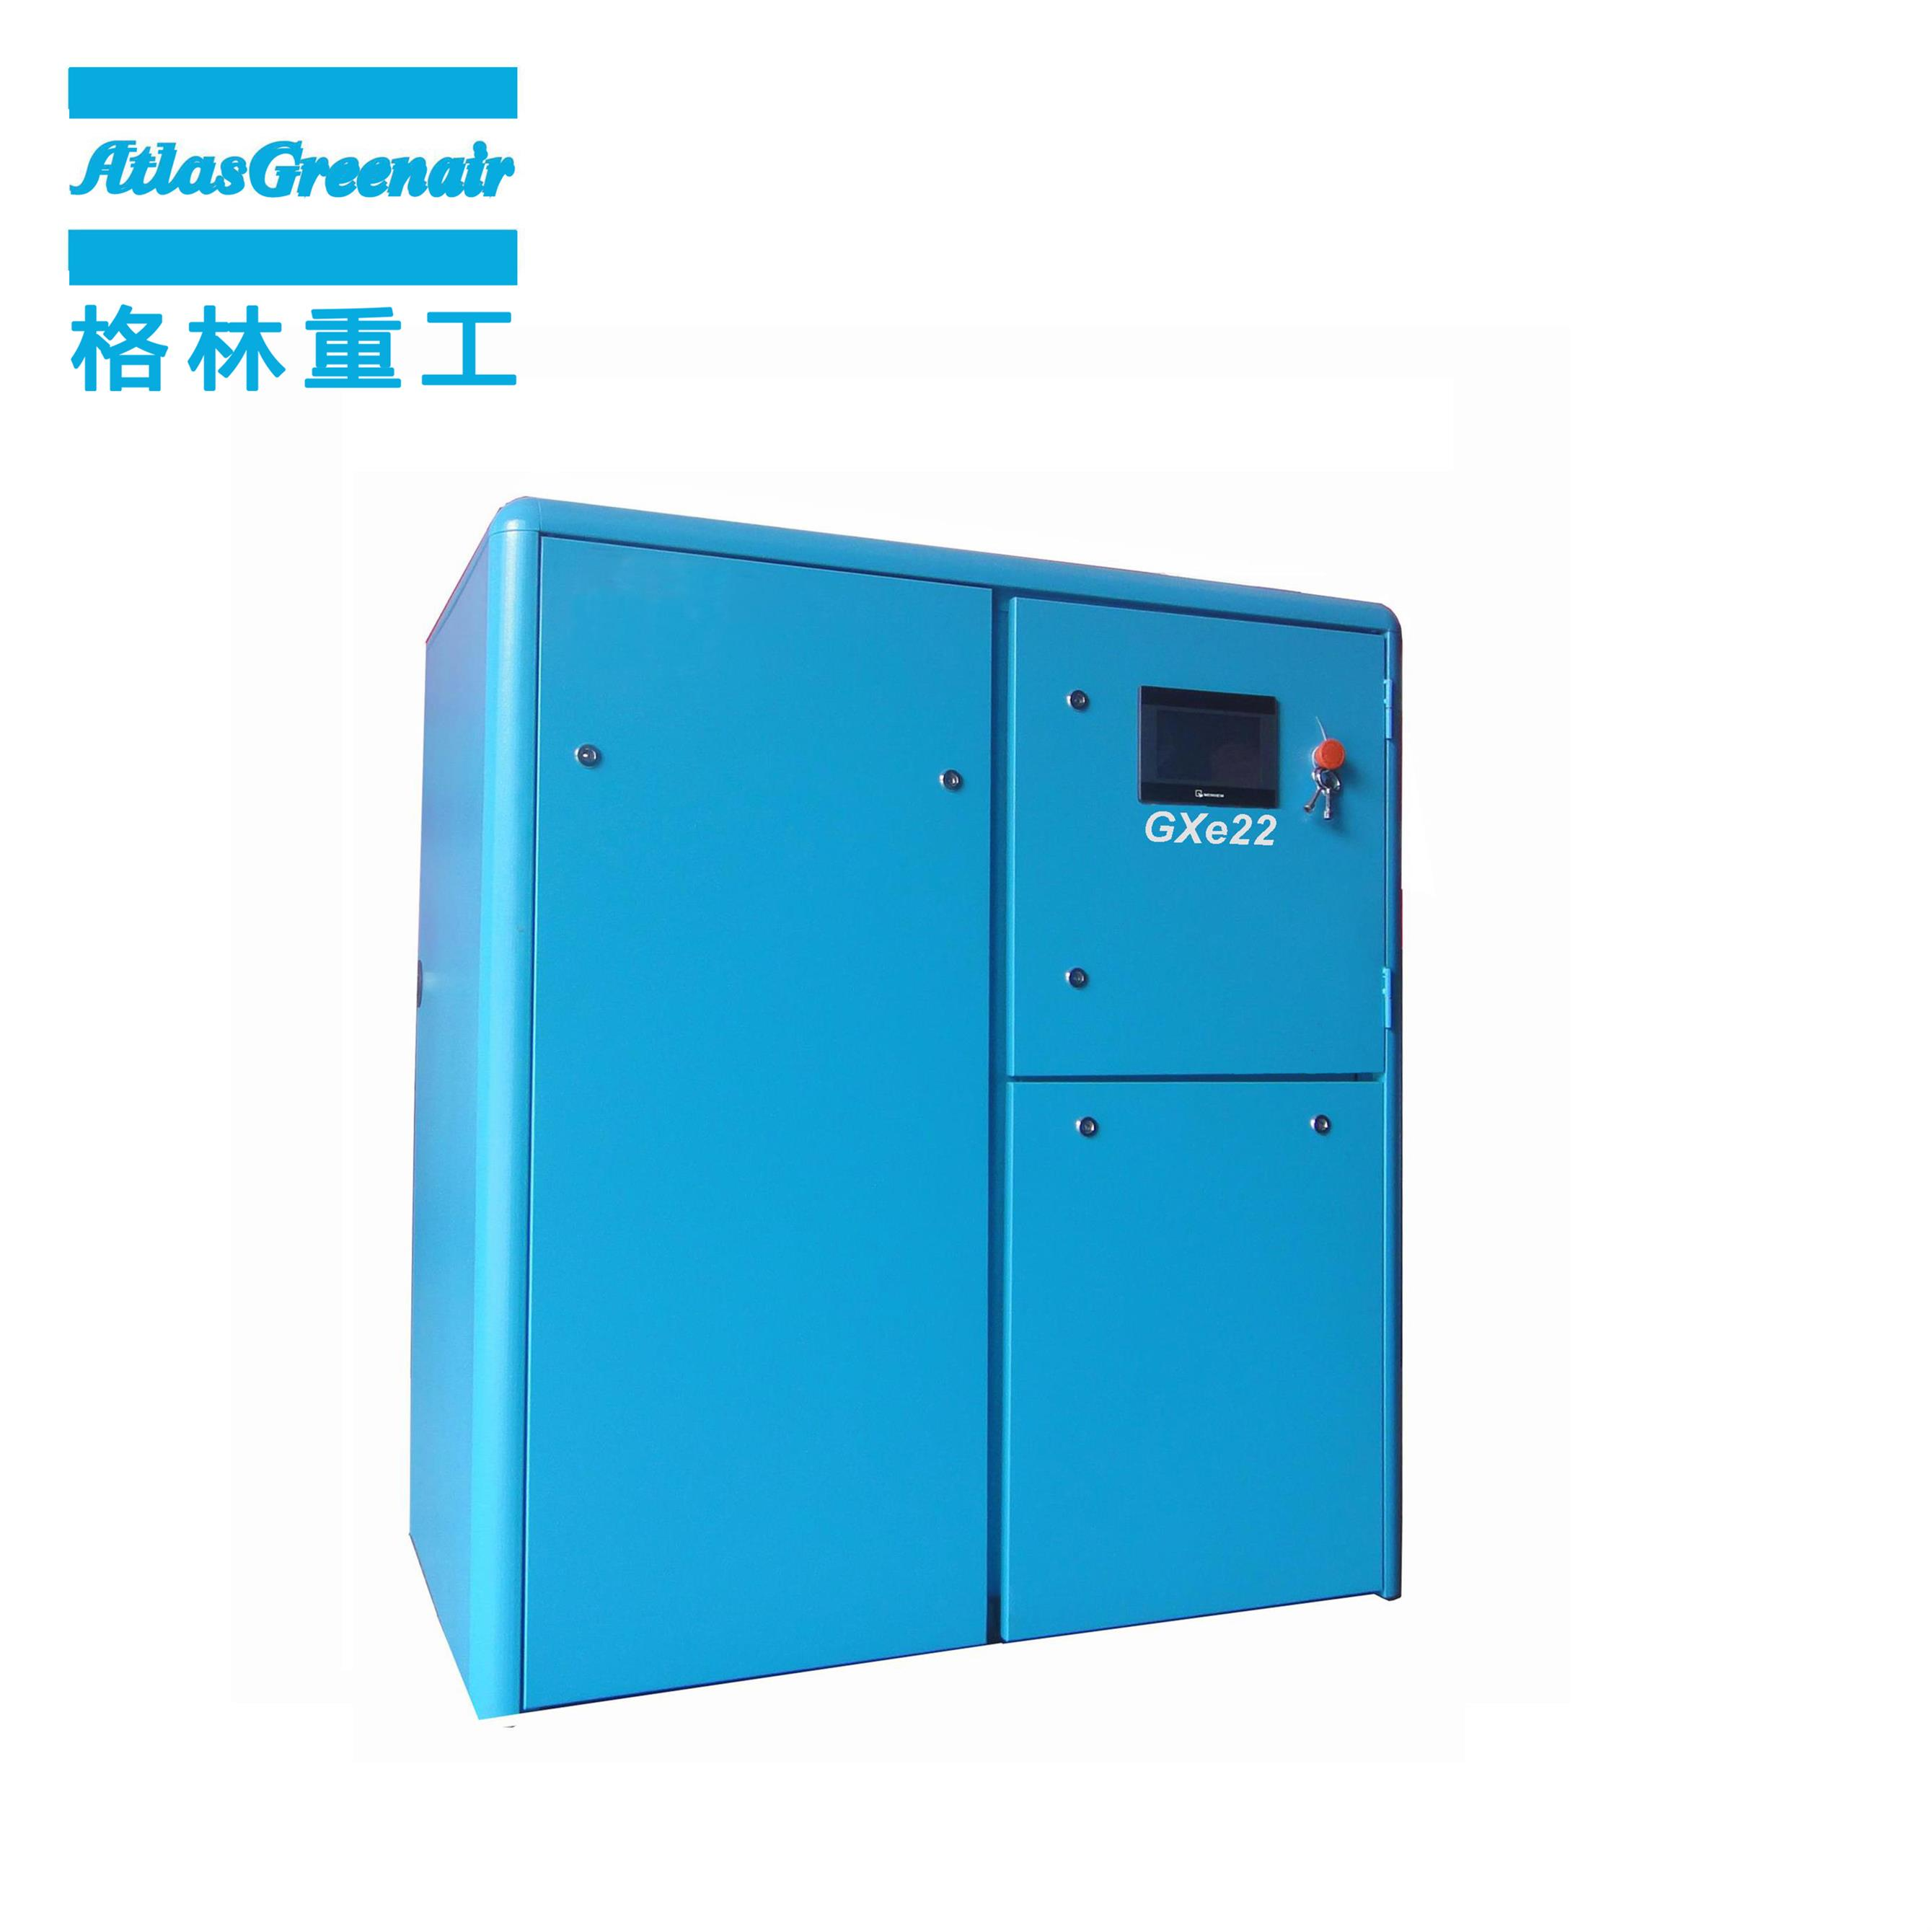 Atlas Greenair Screw Air Compressor top fixed speed rotary screw air compressor company wholesale-1